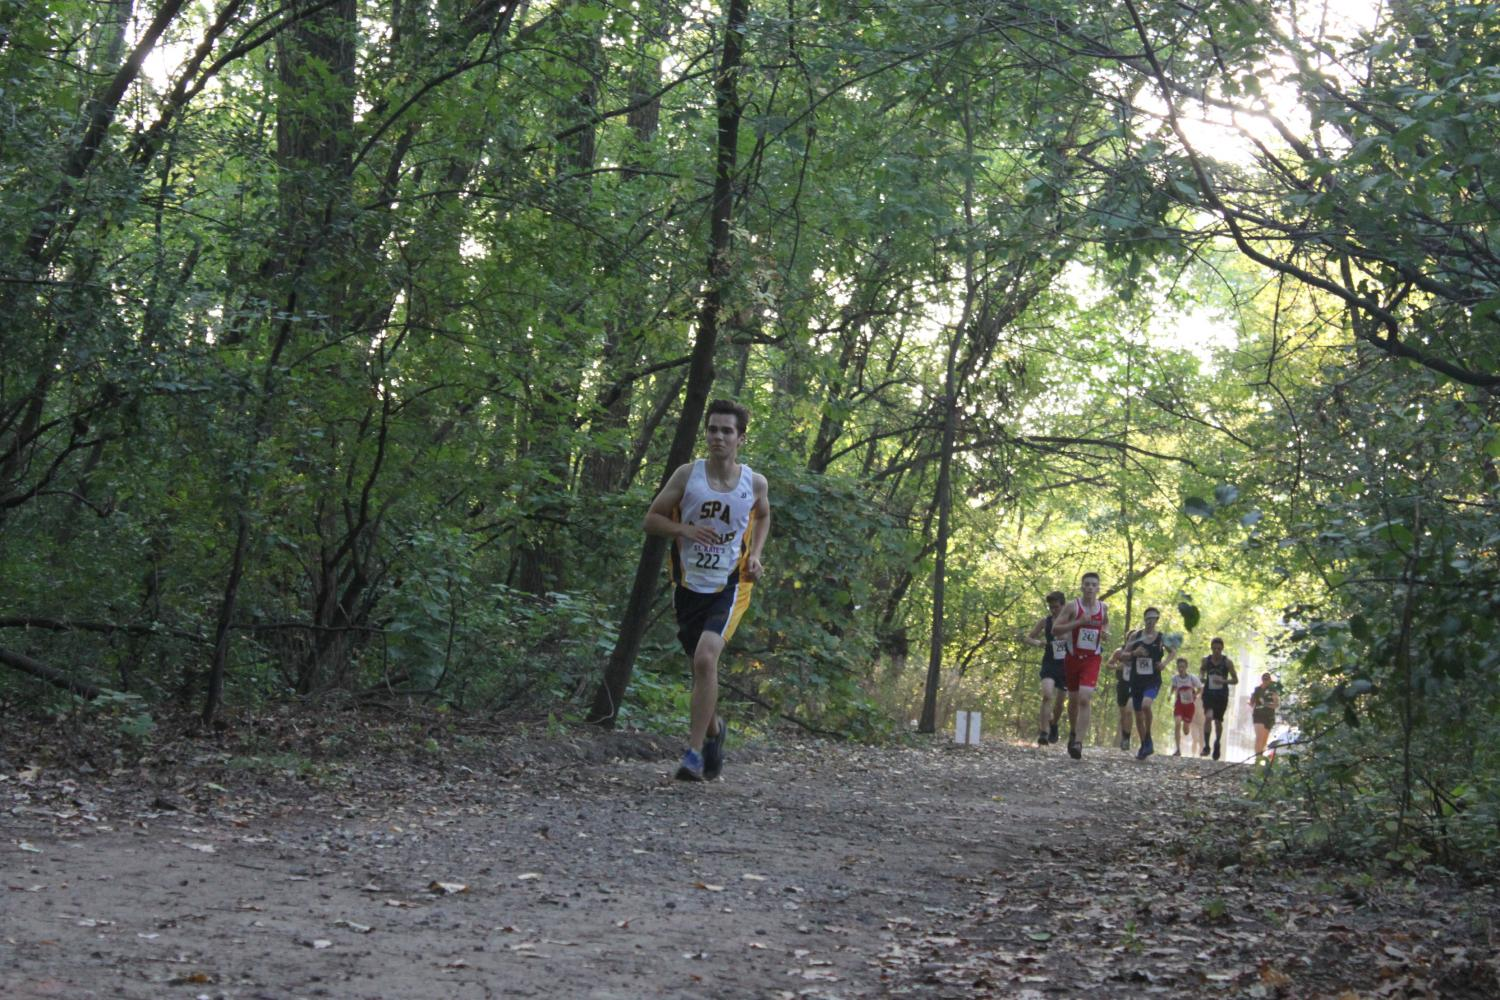 """YOUTH MOVEMENT. Junior runner Will Rinkoff paces himself through a forest and ahead of the competition during a September meet. """"The feeling you get when you perform well in competition makes all the hard work you've done seem worth it,"""" junior co-captain Jonah Spencer said."""